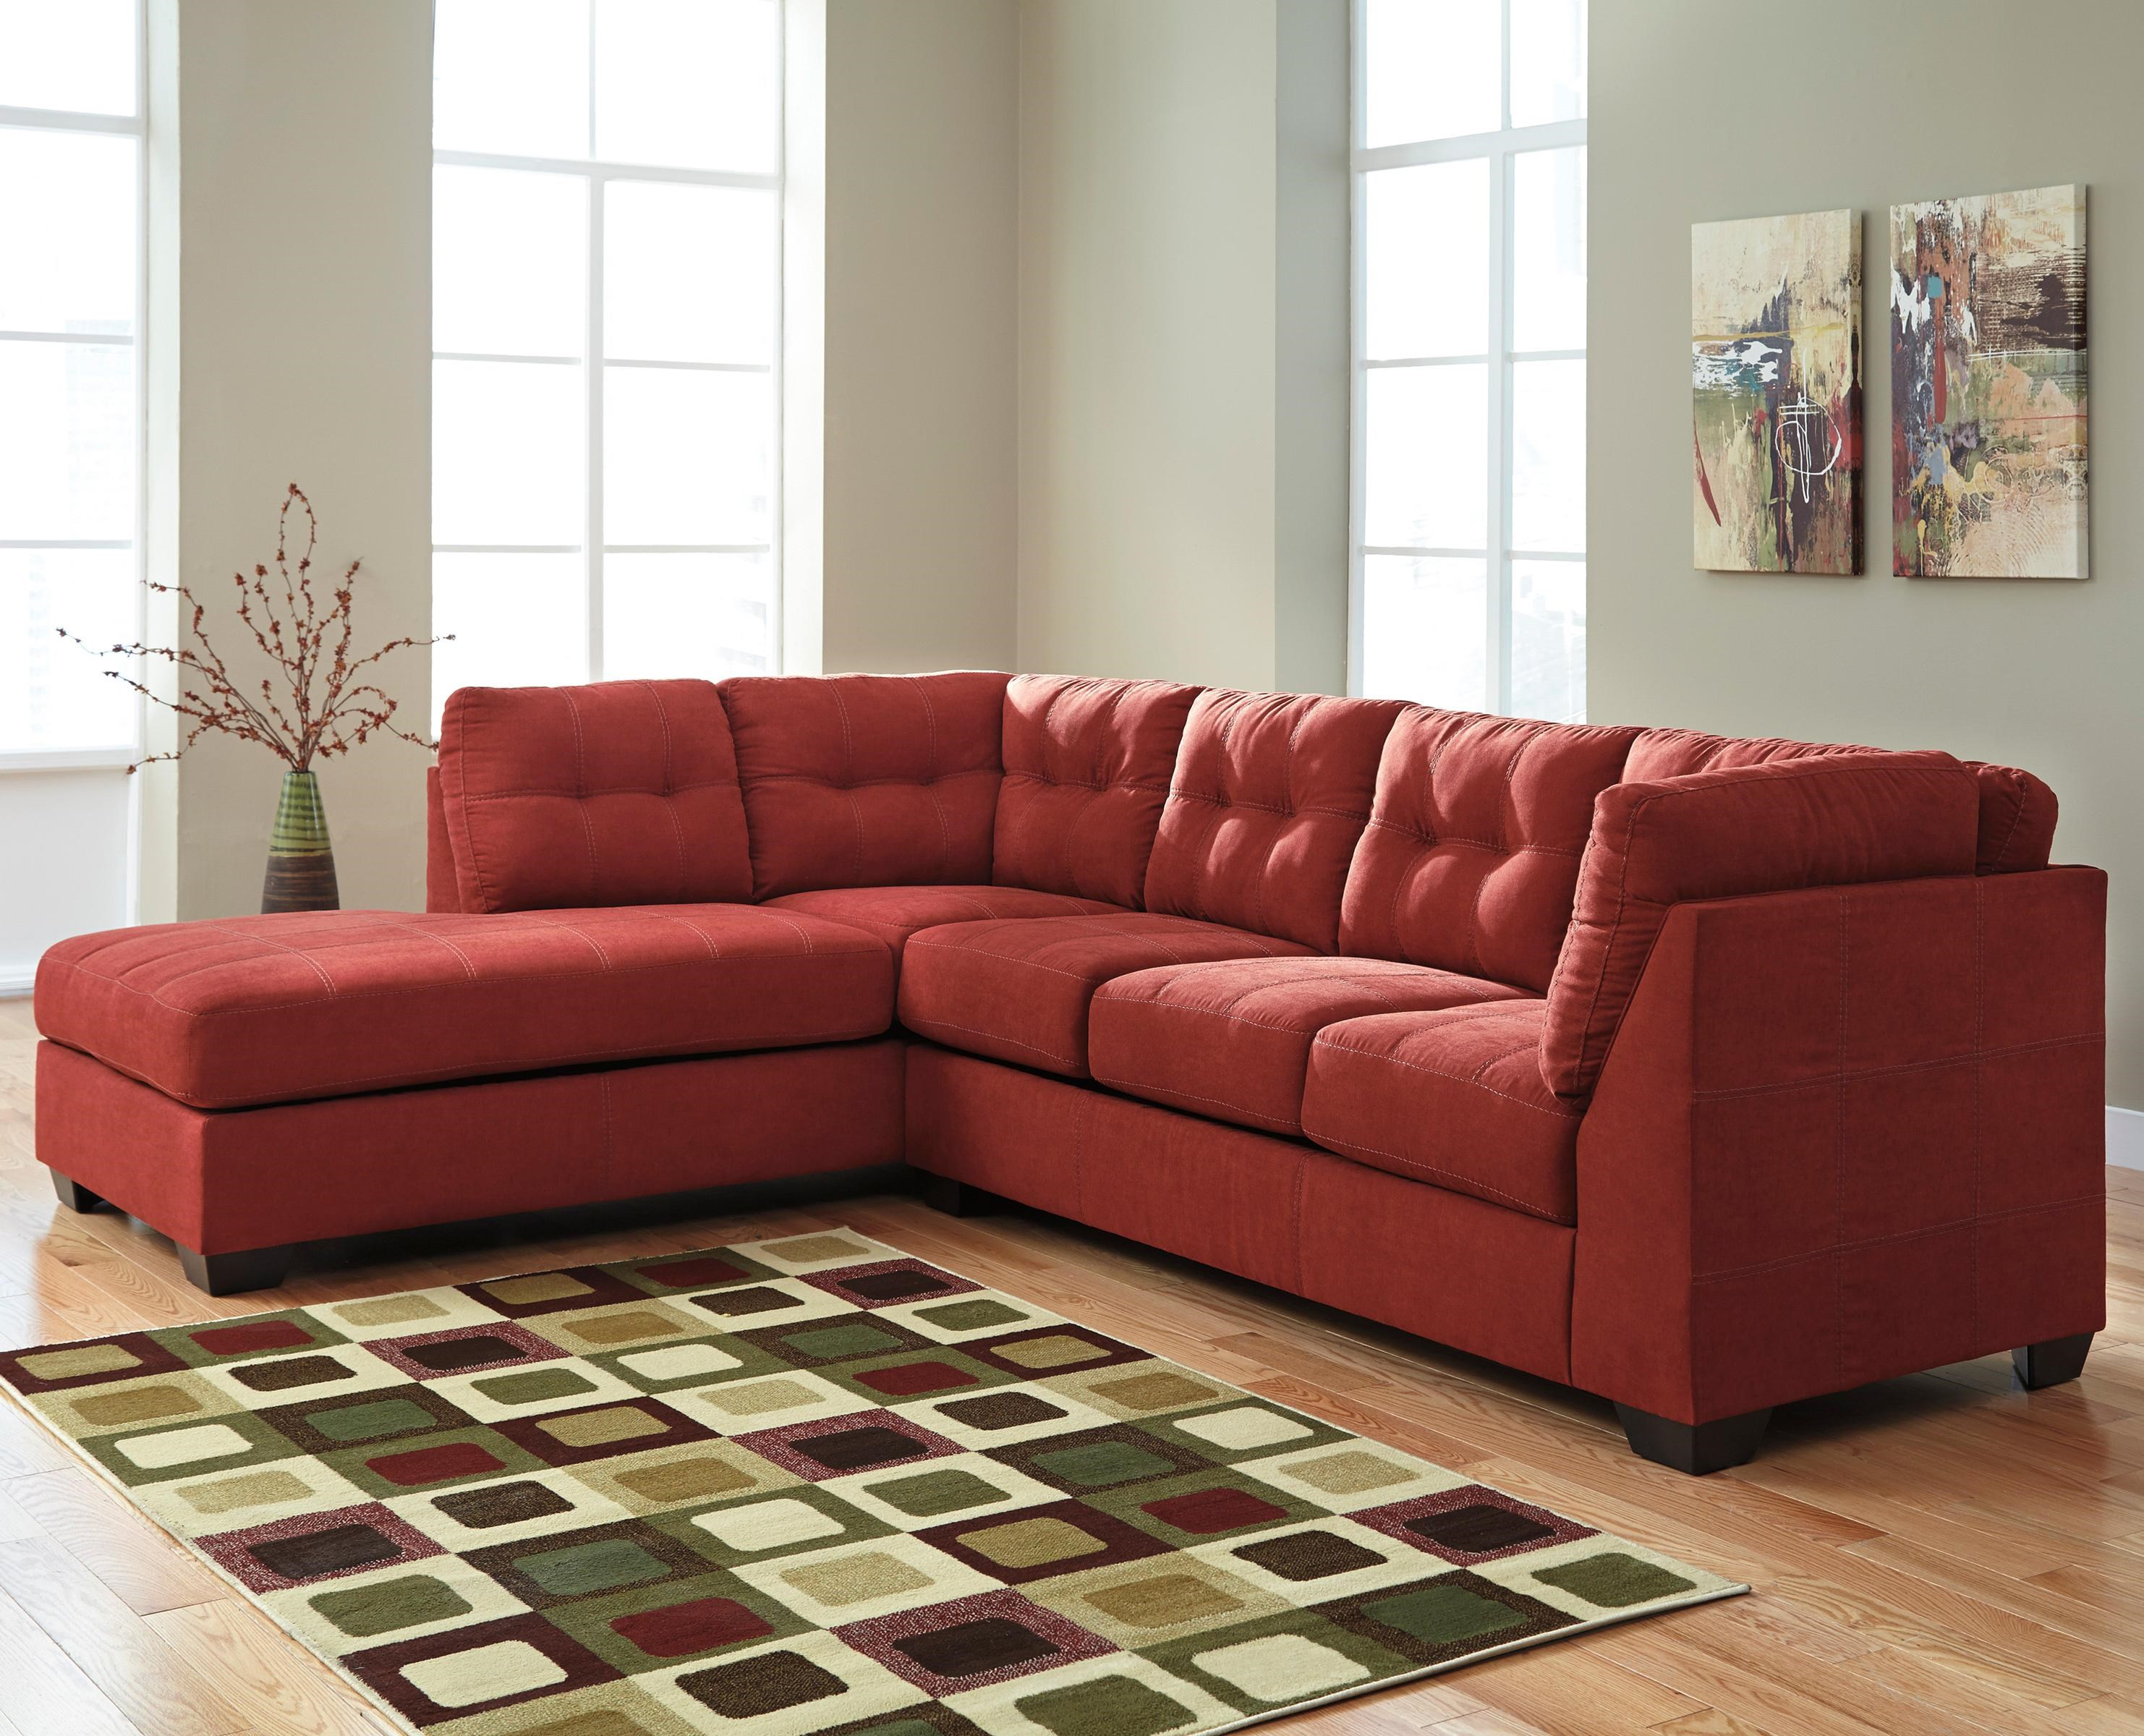 Benchcraft Maier - Sienna 2-Piece Sectional with Left Chaise - Dunk u0026 Bright Furniture - Sectional Sofas : 2 piece sectional sofa with chaise - Sectionals, Sofas & Couches